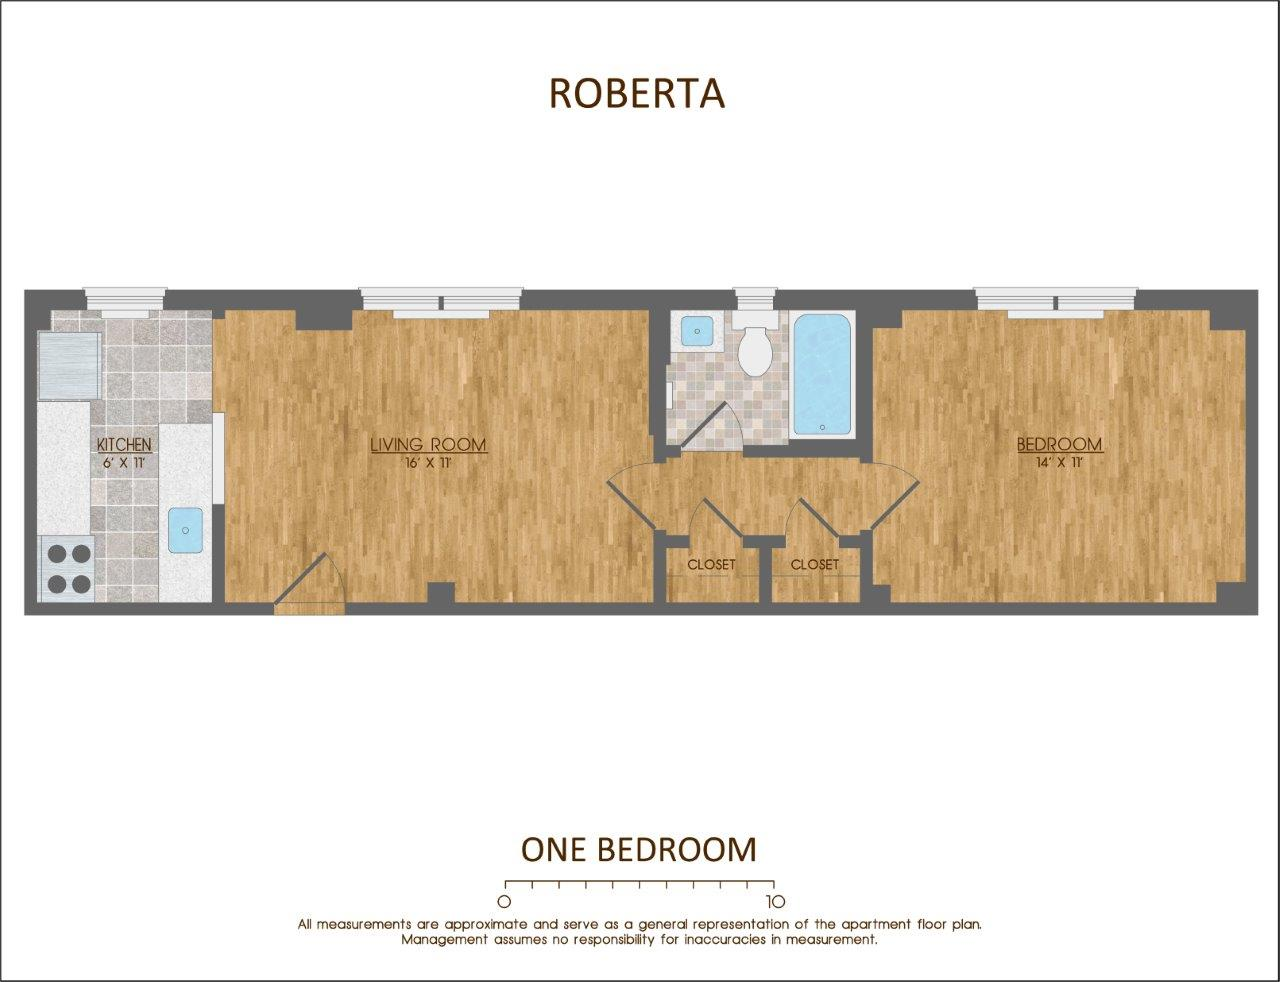 The Roberta for rent